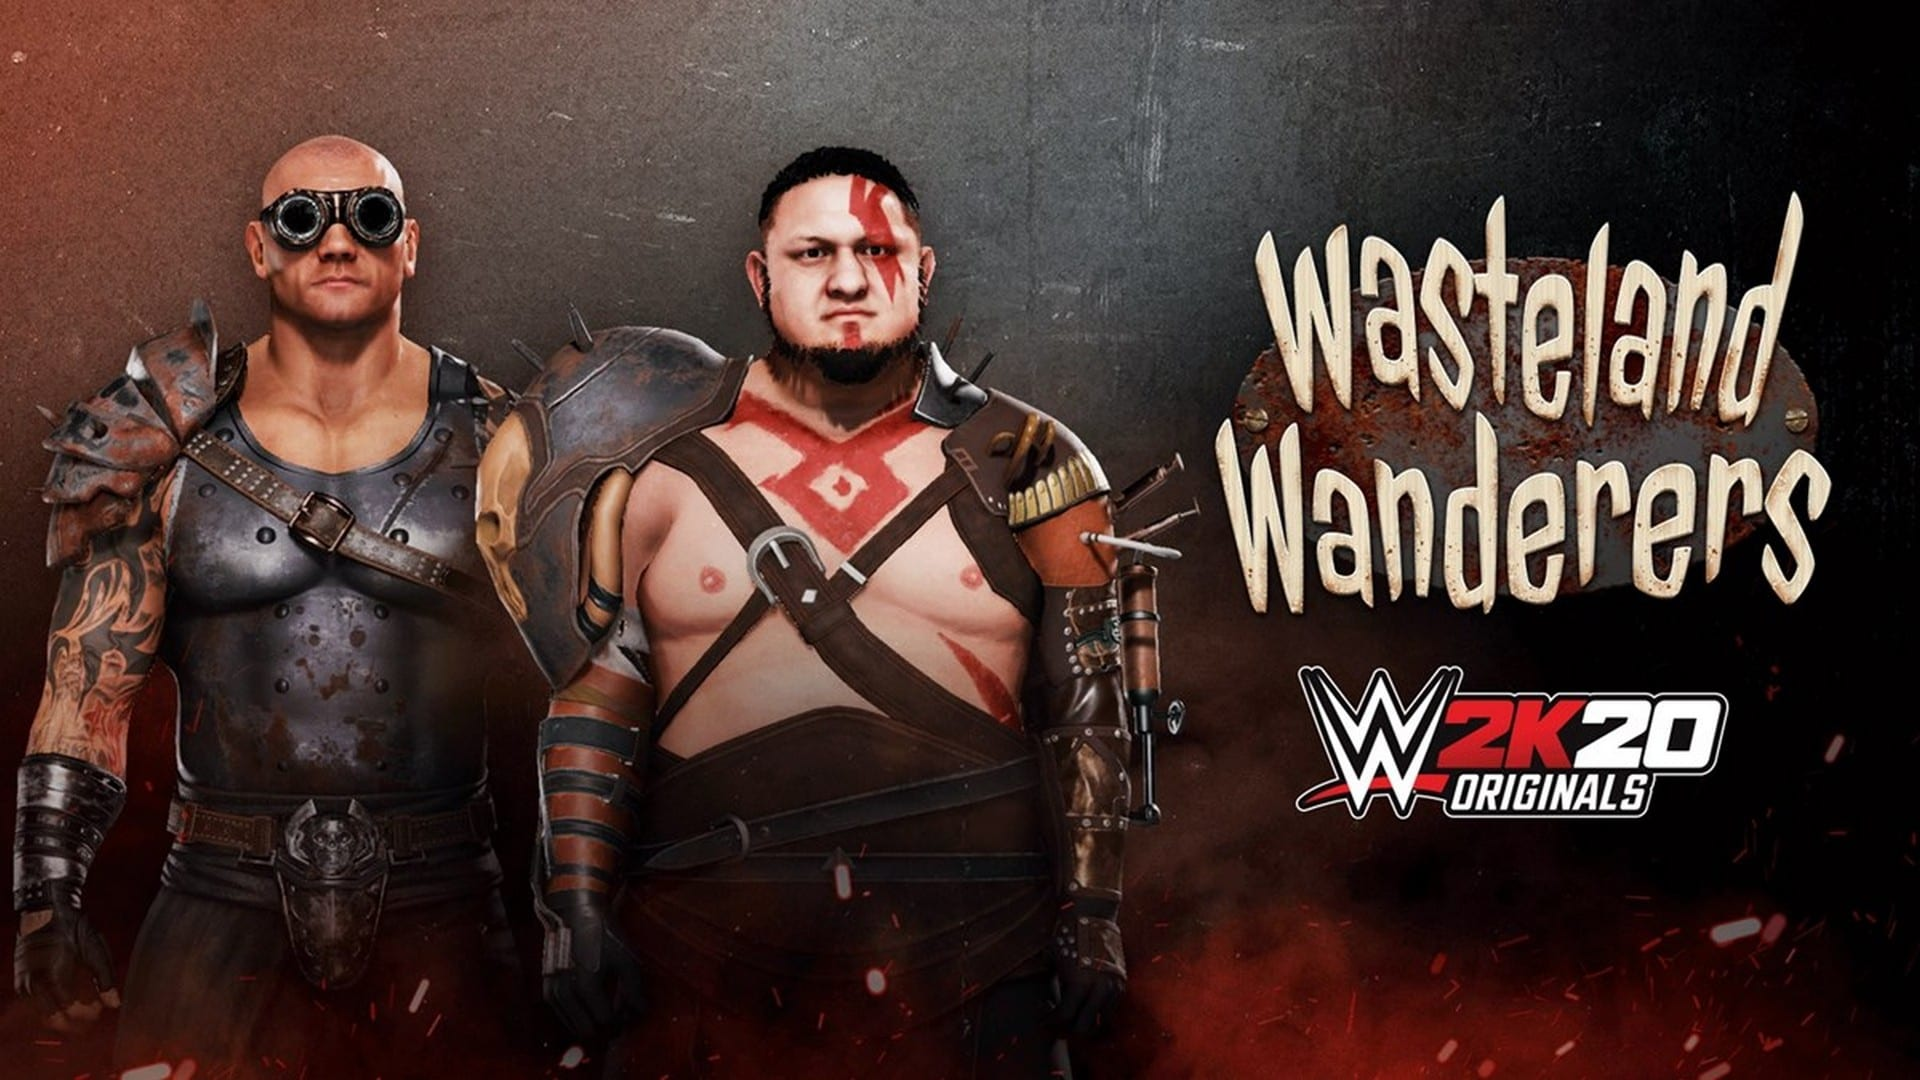 WWE 2K20 Originals: Wasteland Wanderers Available Now